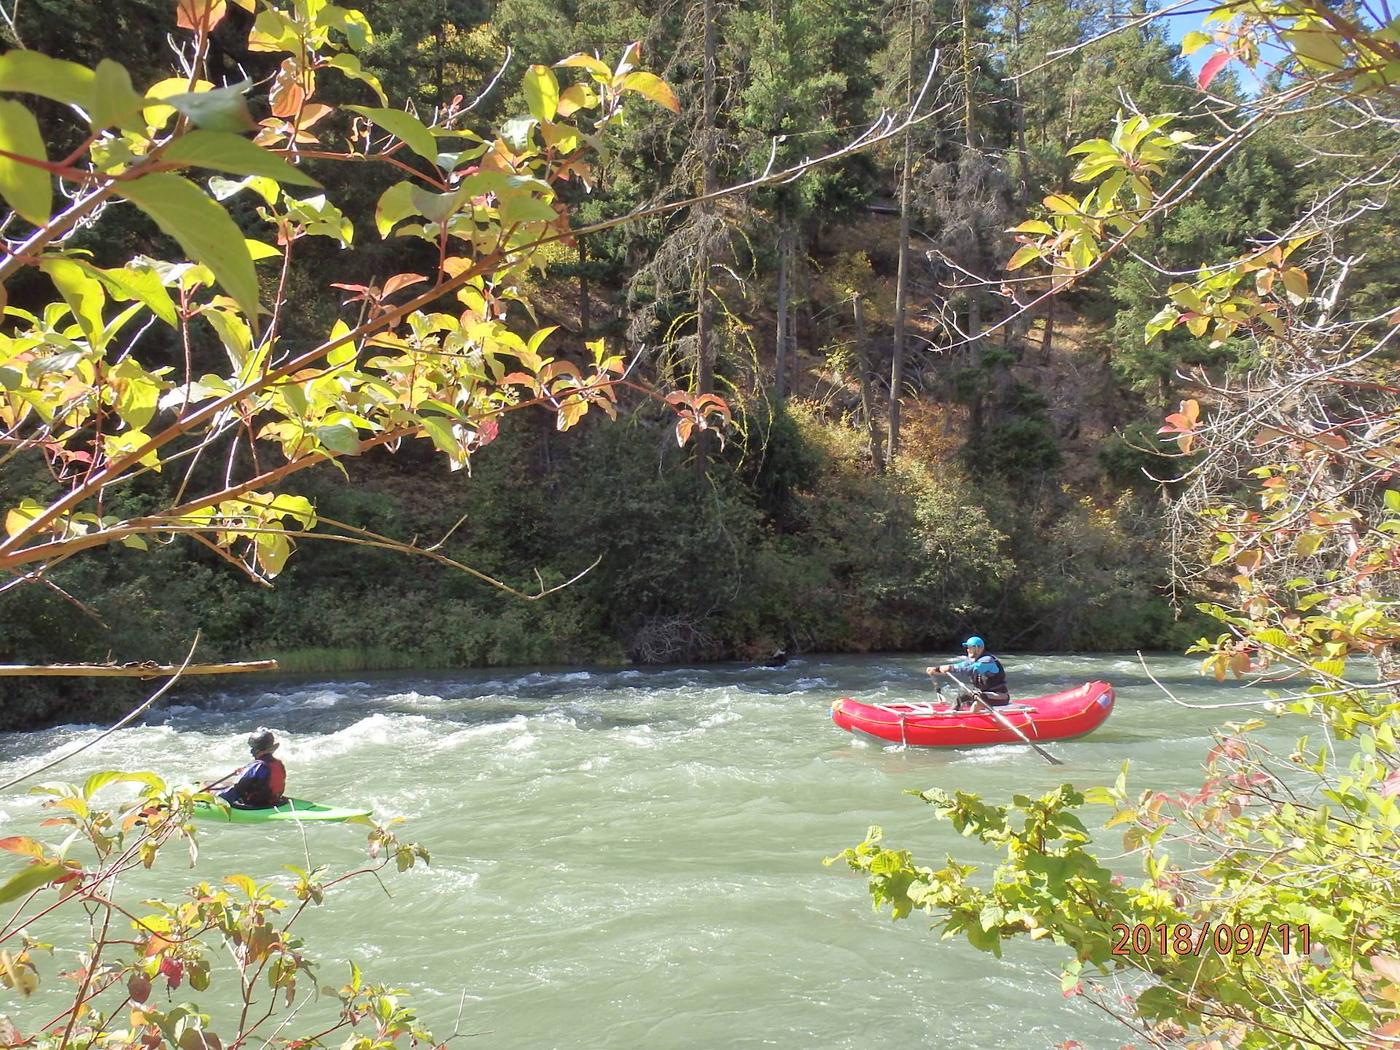 Willows CampgroundRafting is a popular activity on the Tieton River